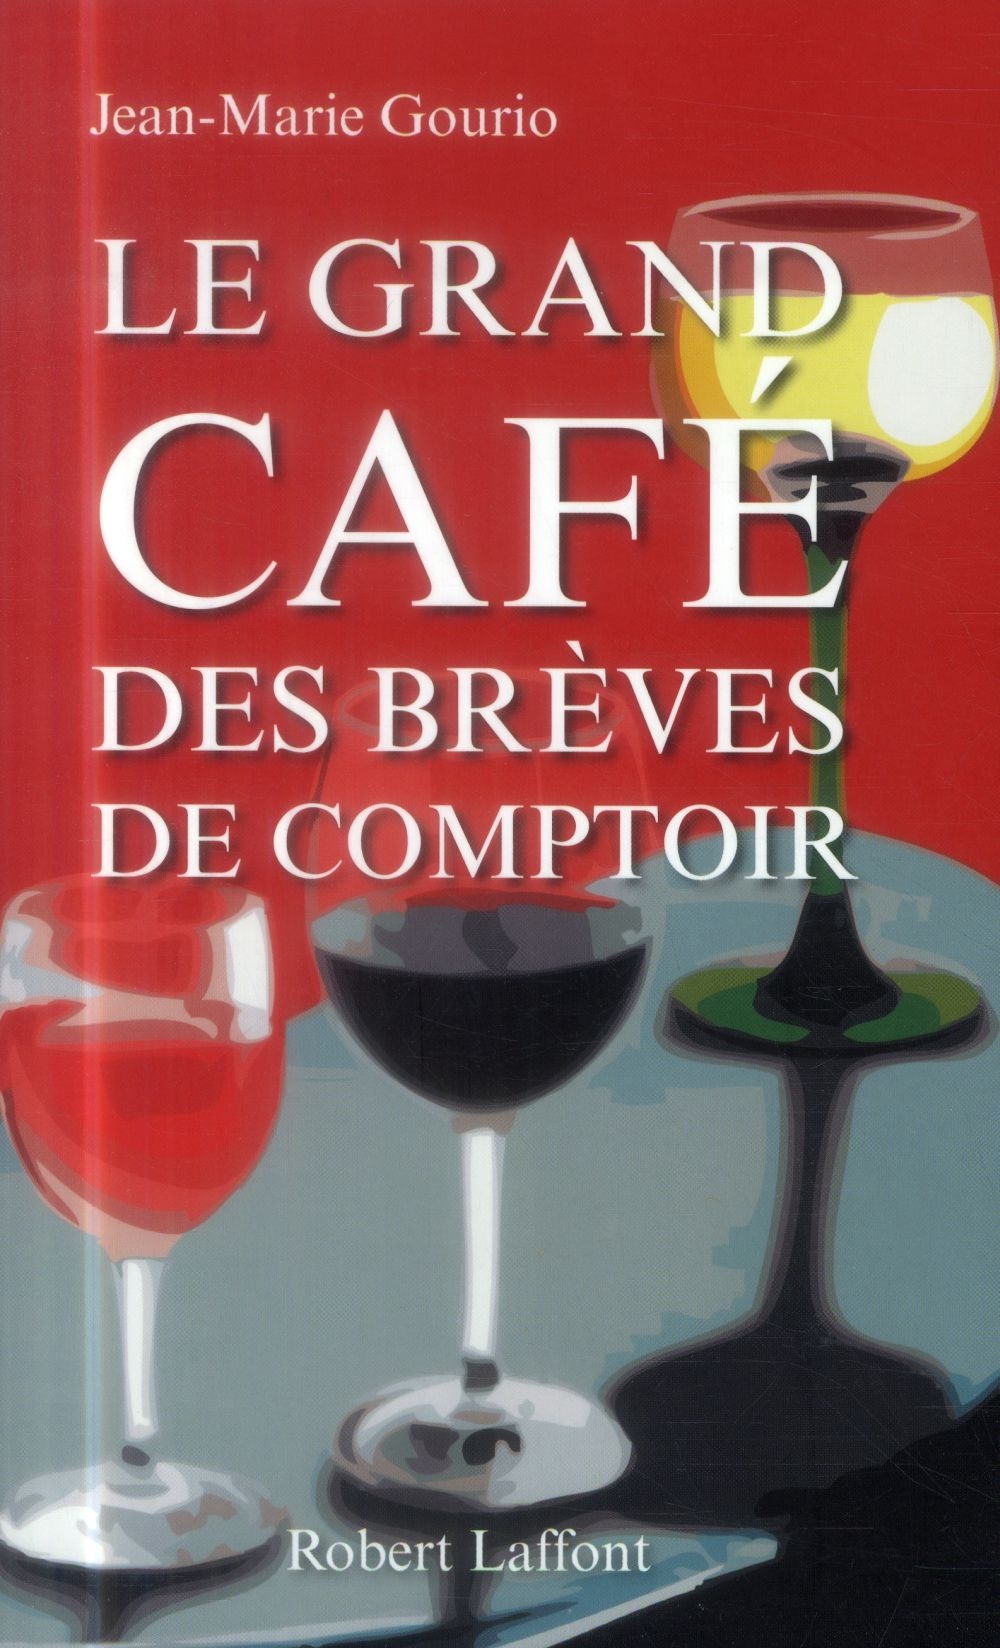 LE GRAND CAFE DES BREVES DE COMPTOIR